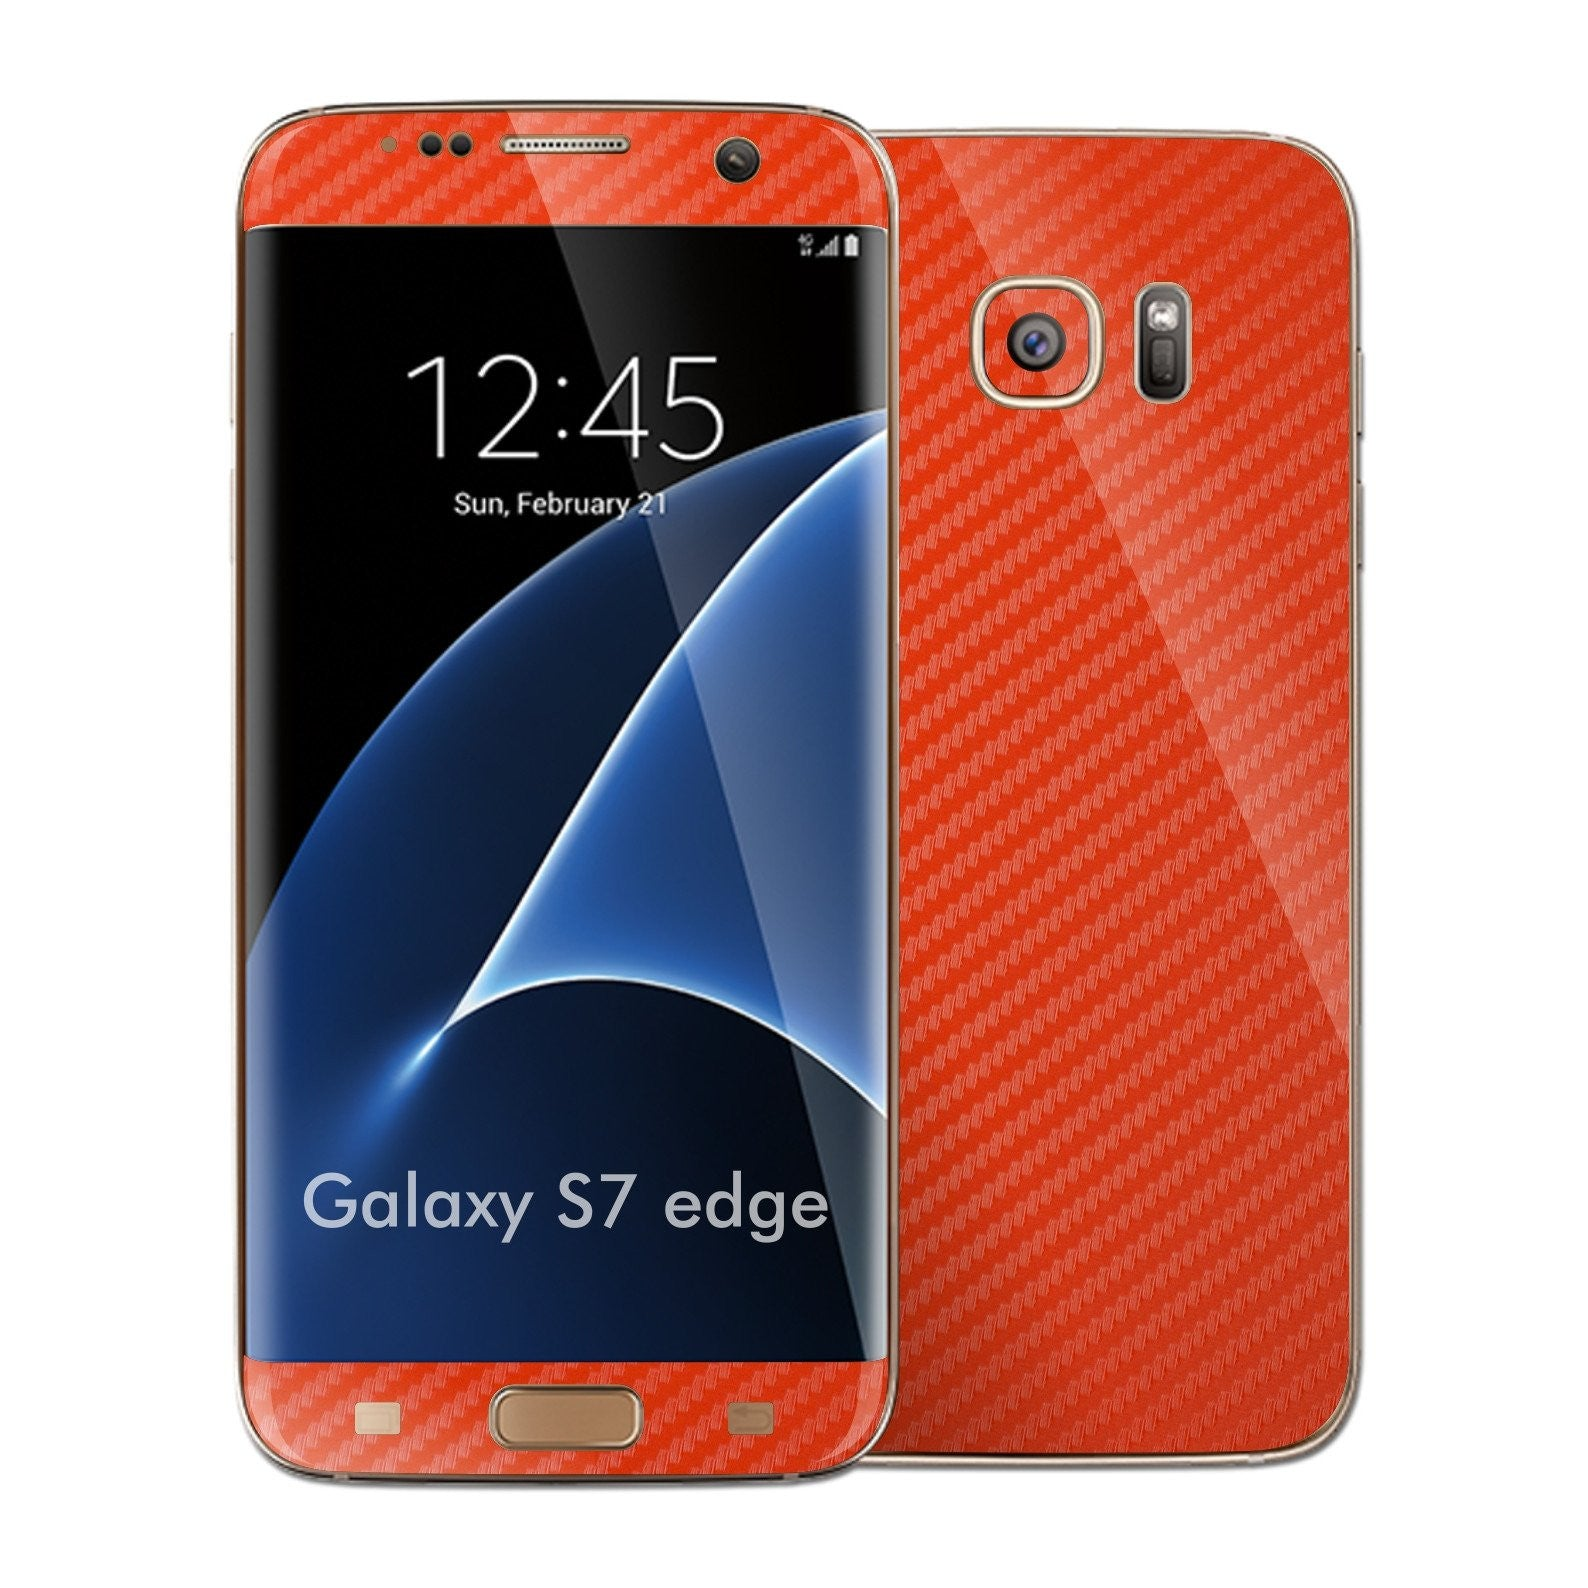 Samsung Galaxy S7 EDGE RED 3D Carbon Fibre Fiber Skin Wrap Decal Sticker Cover Protector by EasySkinz